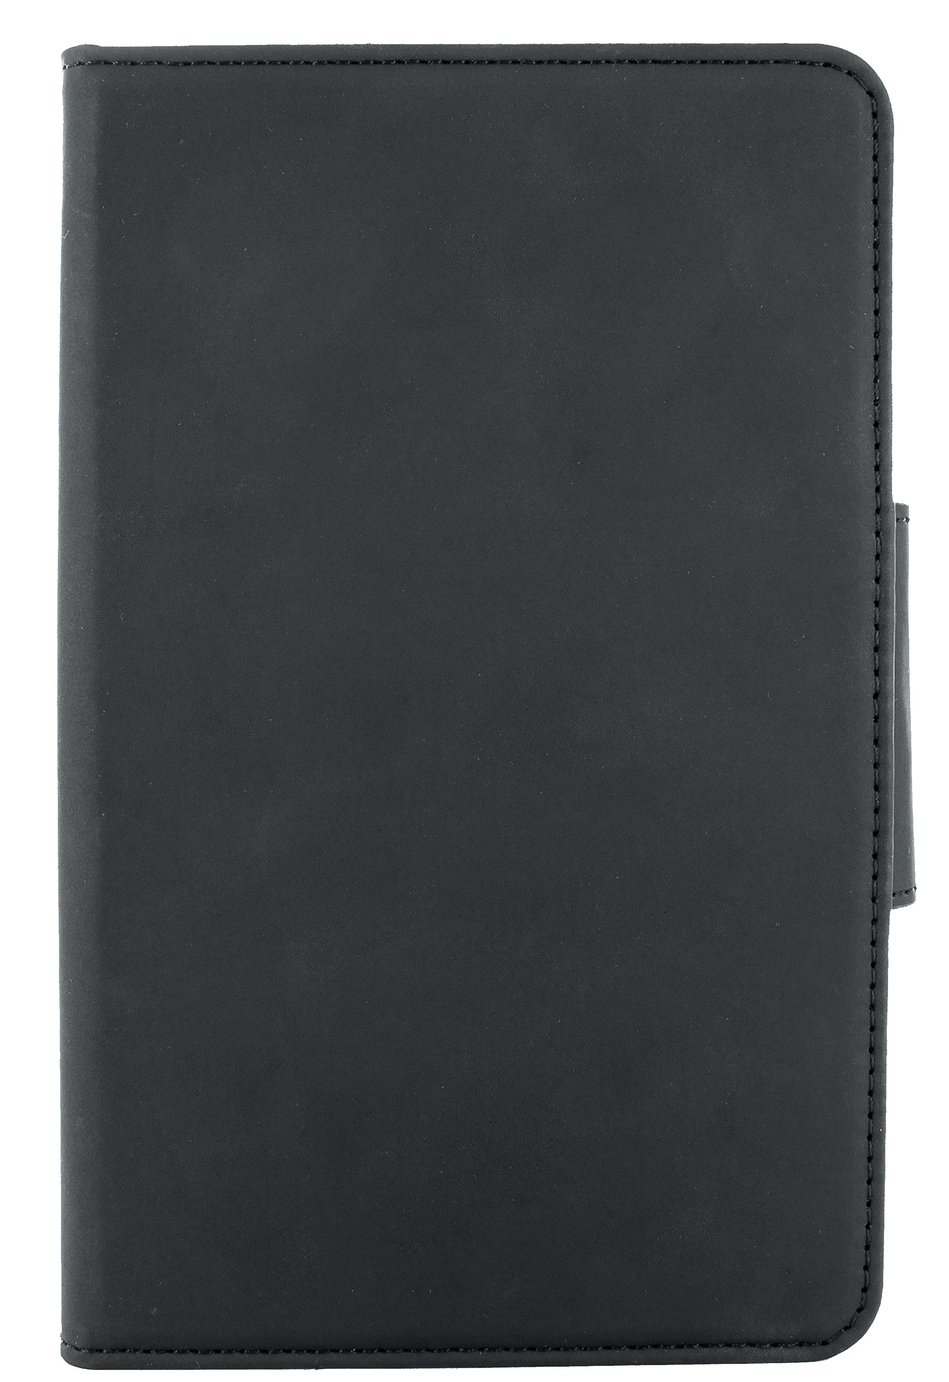 Proporta Samsung Galaxy Tab A 10.1 Inch Tablet Case - Black